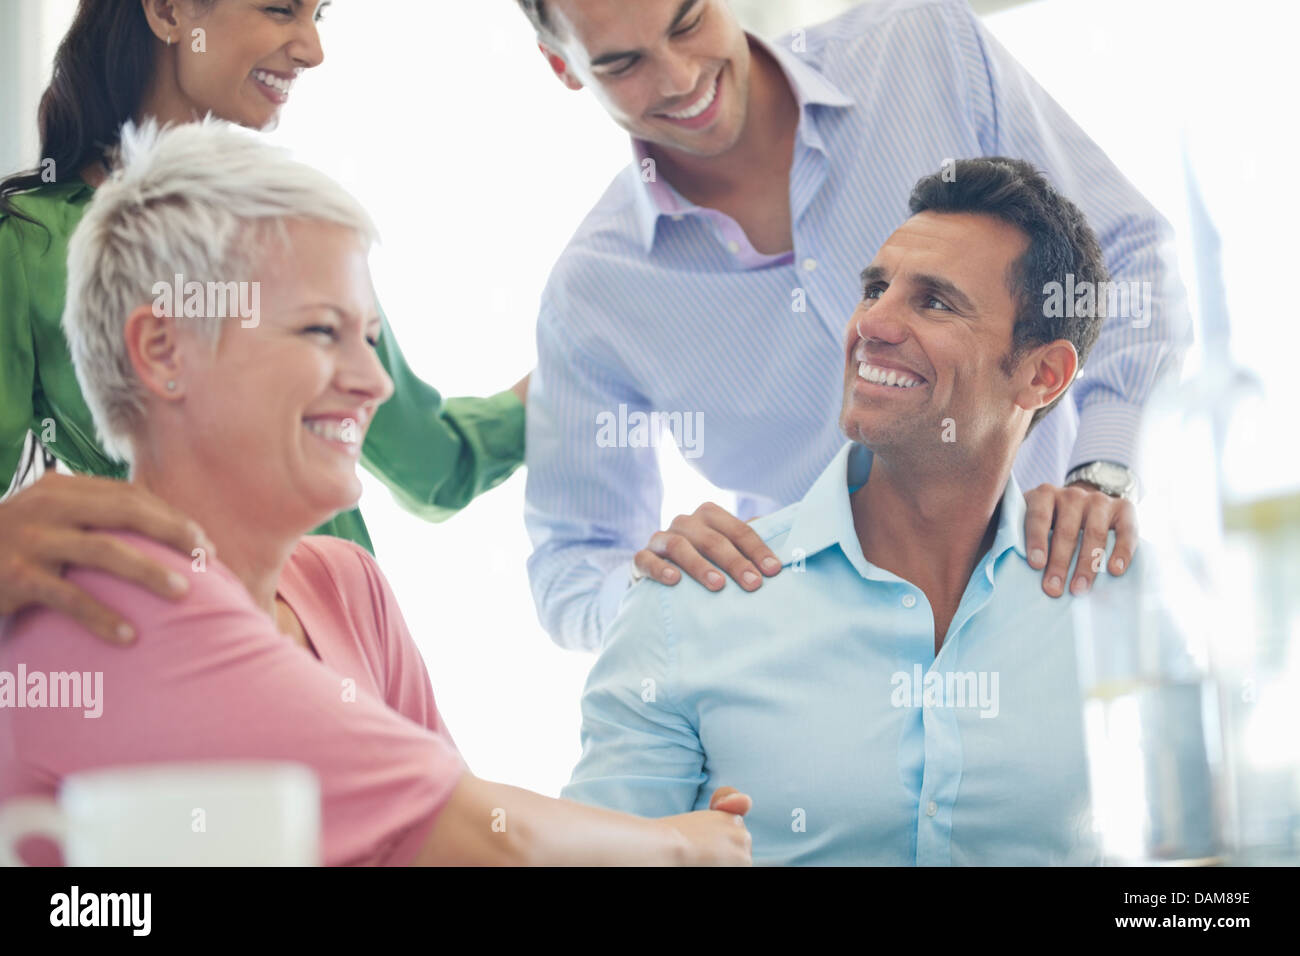 Business people laughing in meeting - Stock Image